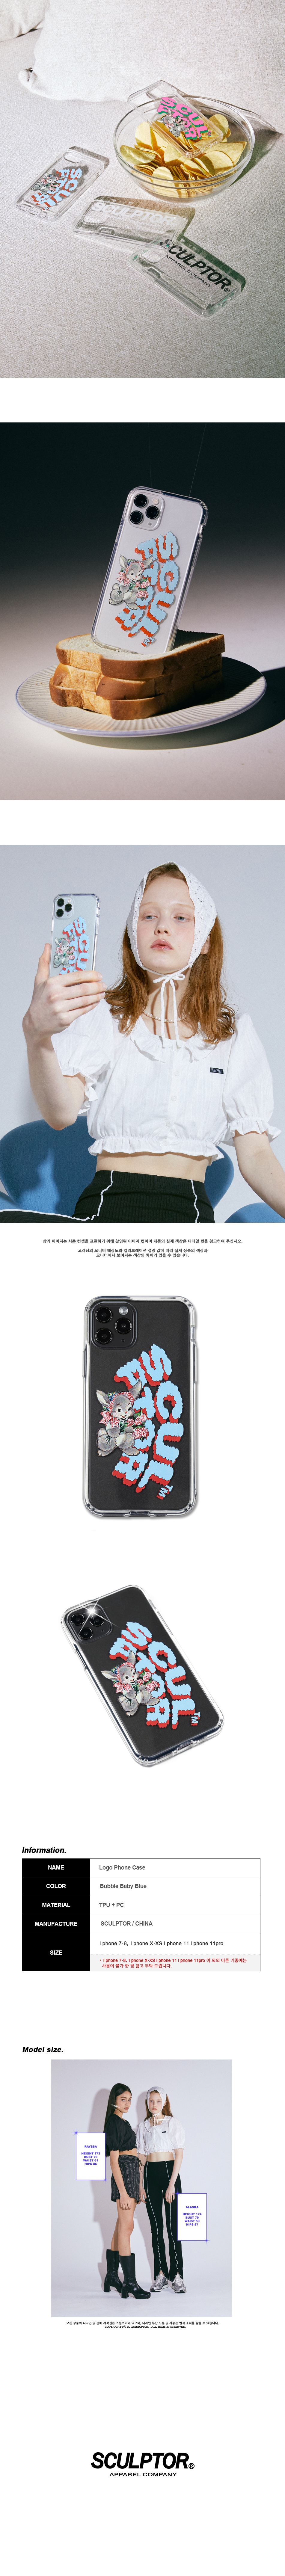 스컬프터(SCULPTOR) Logo Phone Case [BUBBLE/BABY BLUE]